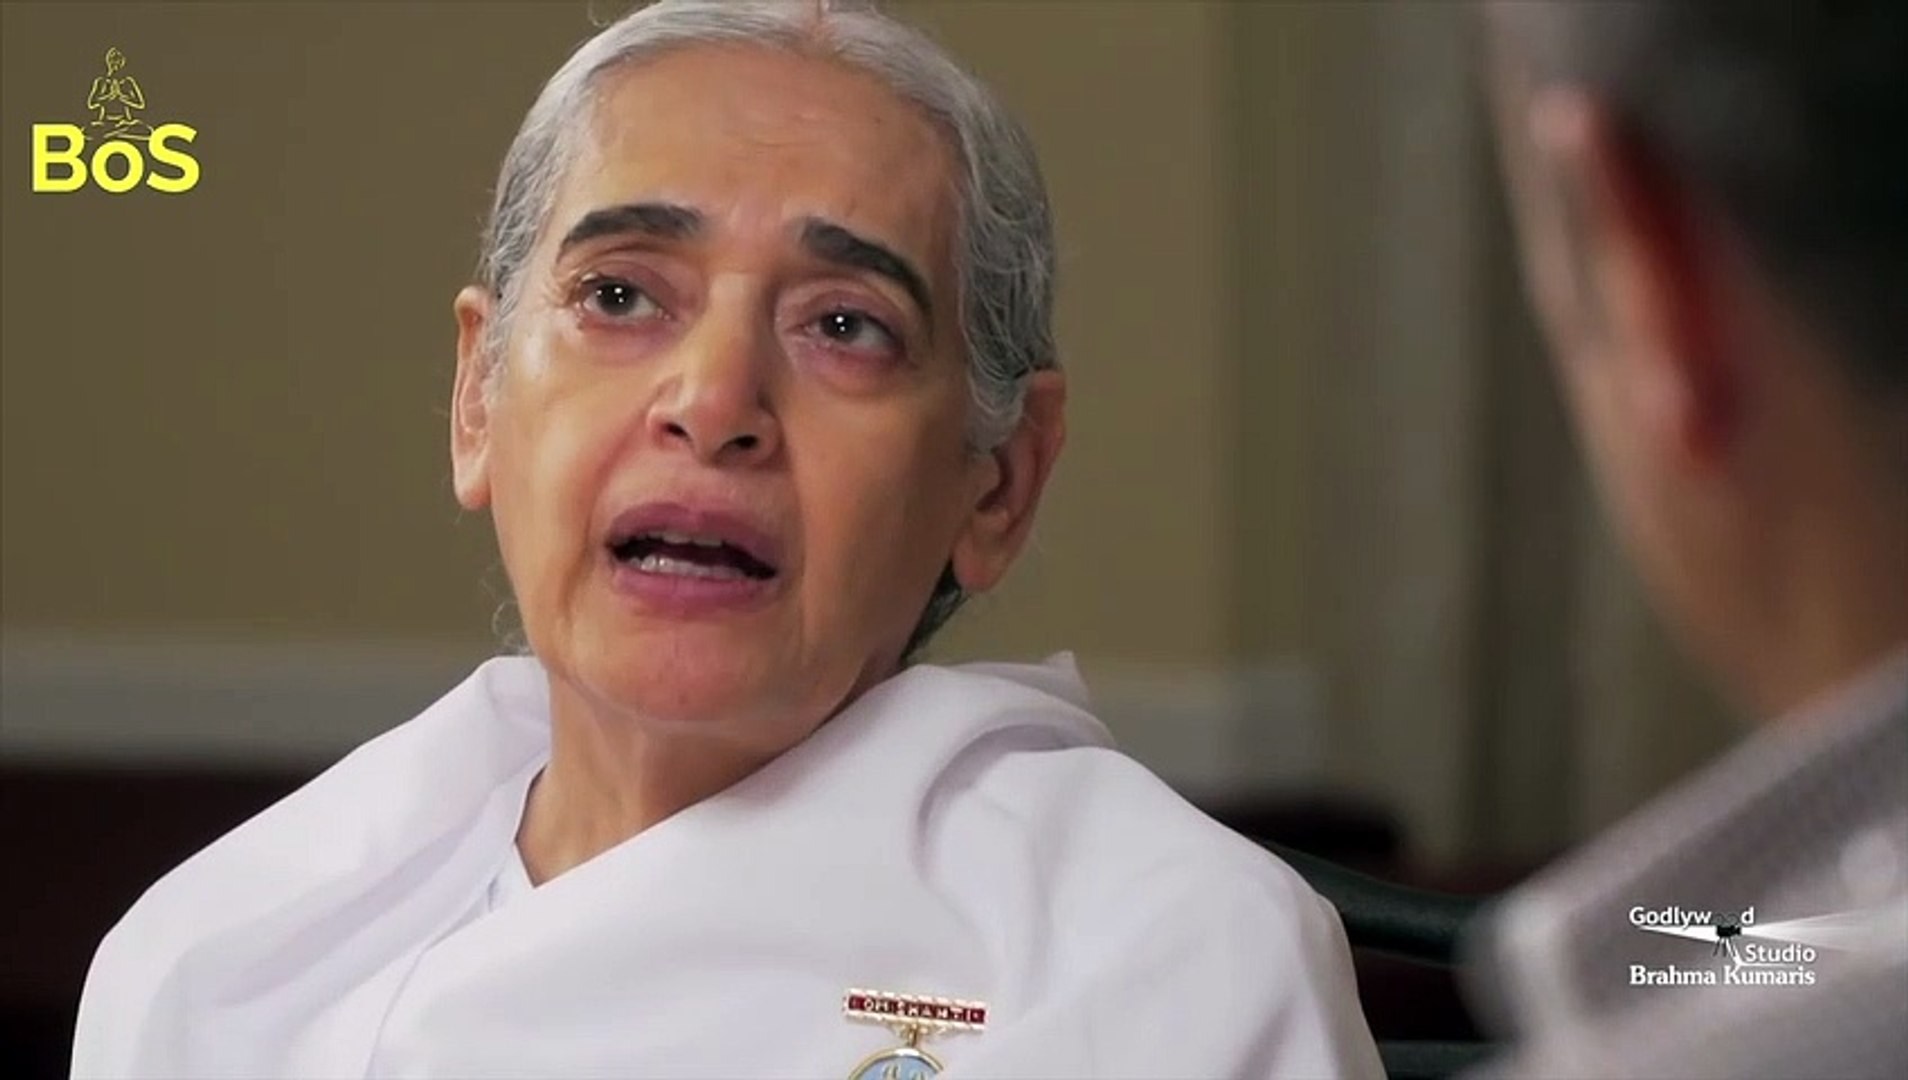 Spiritual Video Brahmakumaris - Relieving the sorrow and pain | Spiritual Thoughts by Sister Jayanti